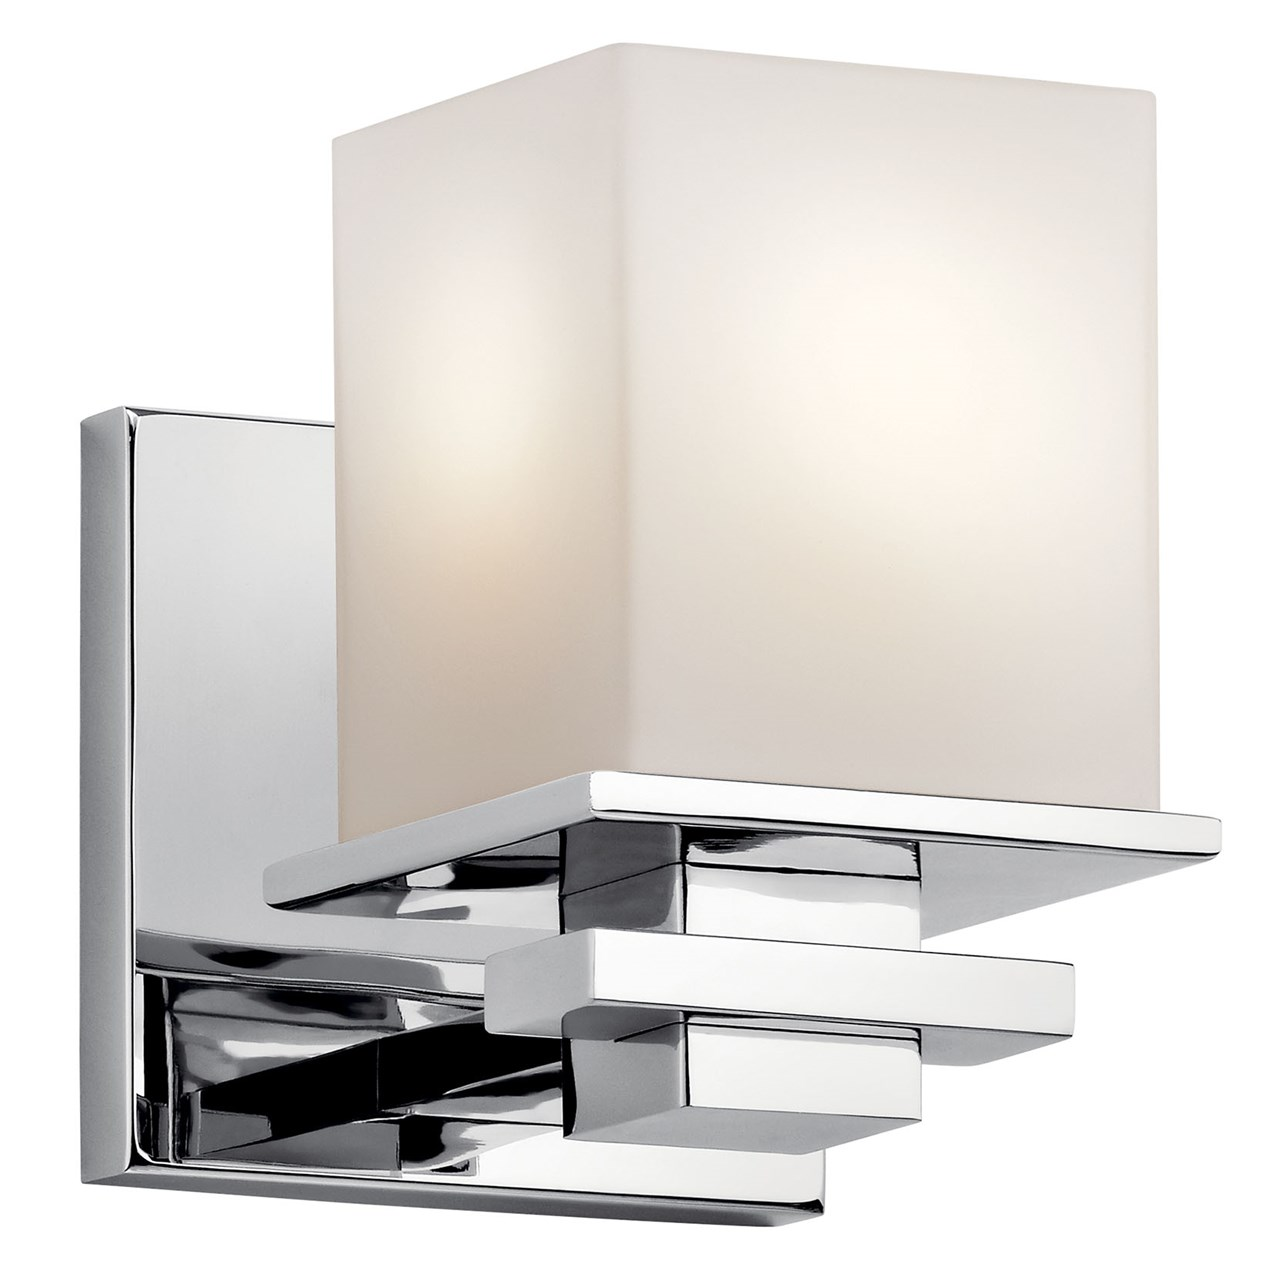 Tully™ 1 Light Wall Sconce Chrome